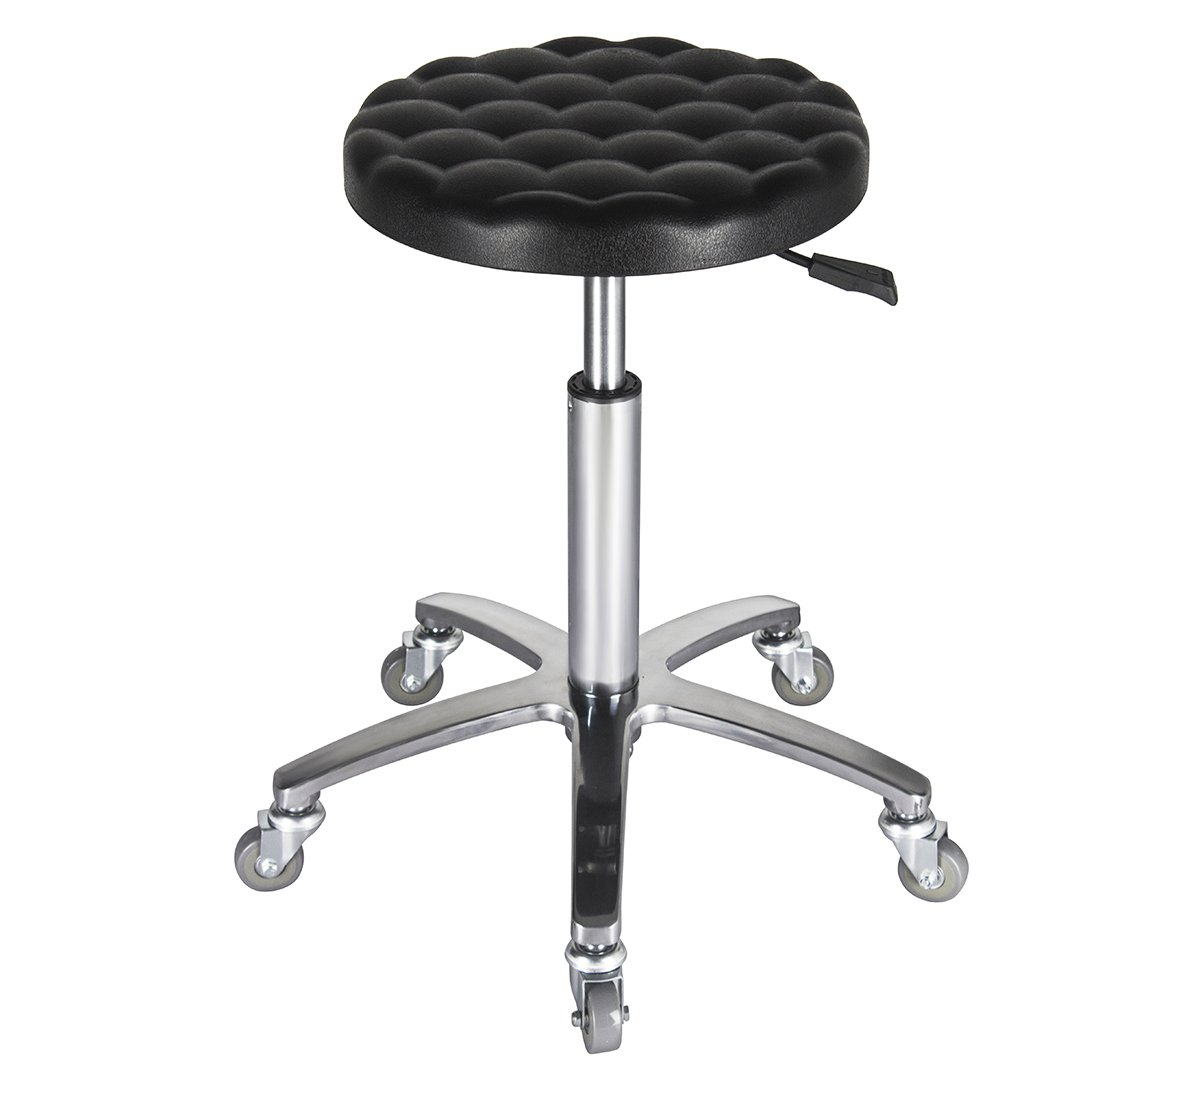 Lab Stool Swivel Chairs for Class Laboratory Massage Spa Salon with Wheels and Metal Plated Frame,Adjustable Rolling Hydraulic (Black)